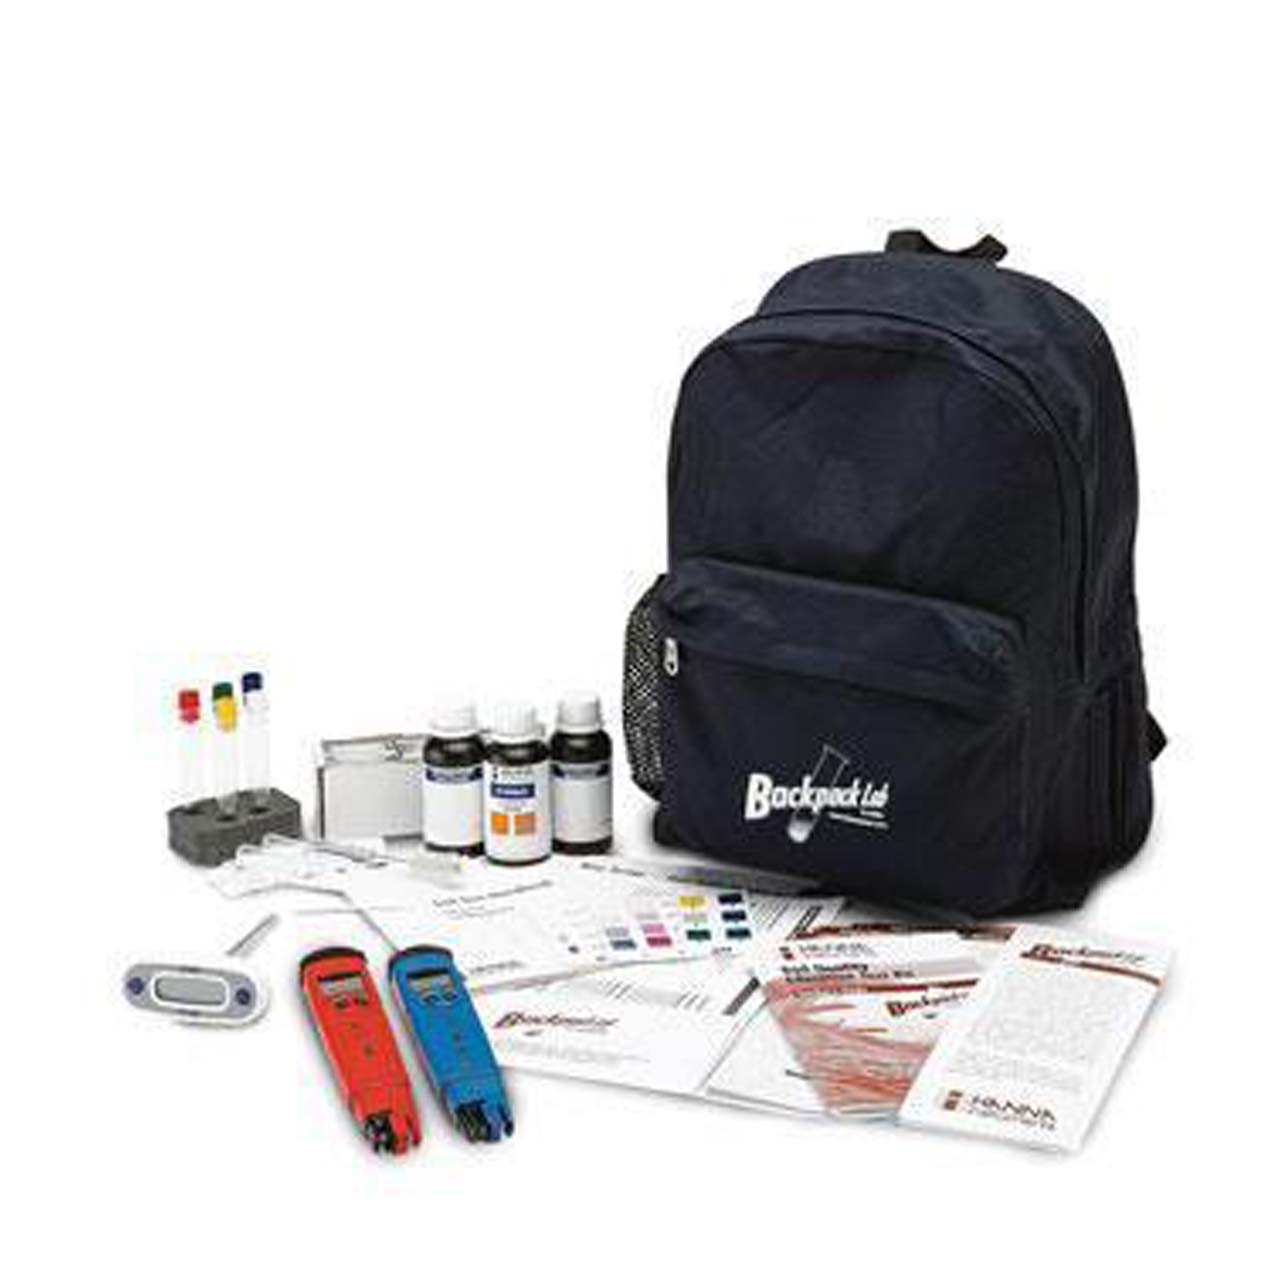 Backpack Lab soil quality education test kit